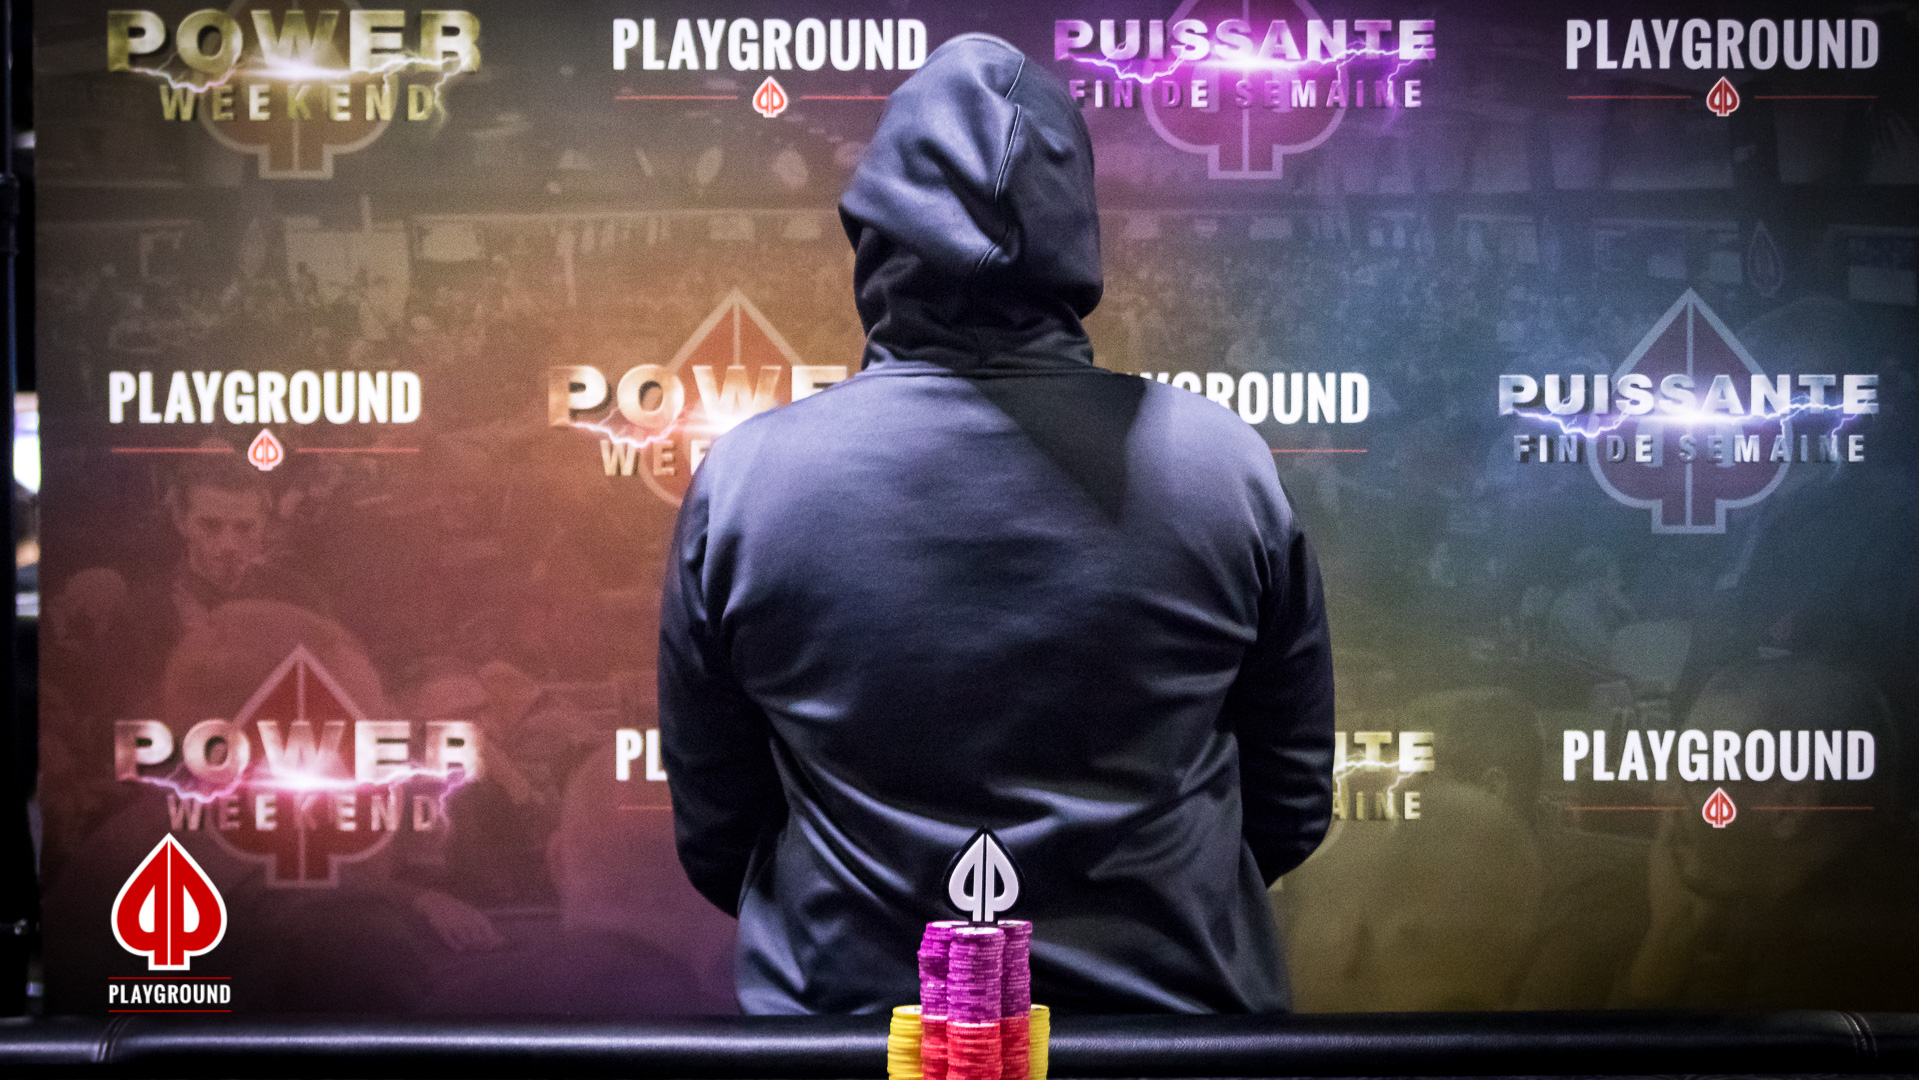 Ron G. becomes the PLO Bounty Re-entry champion